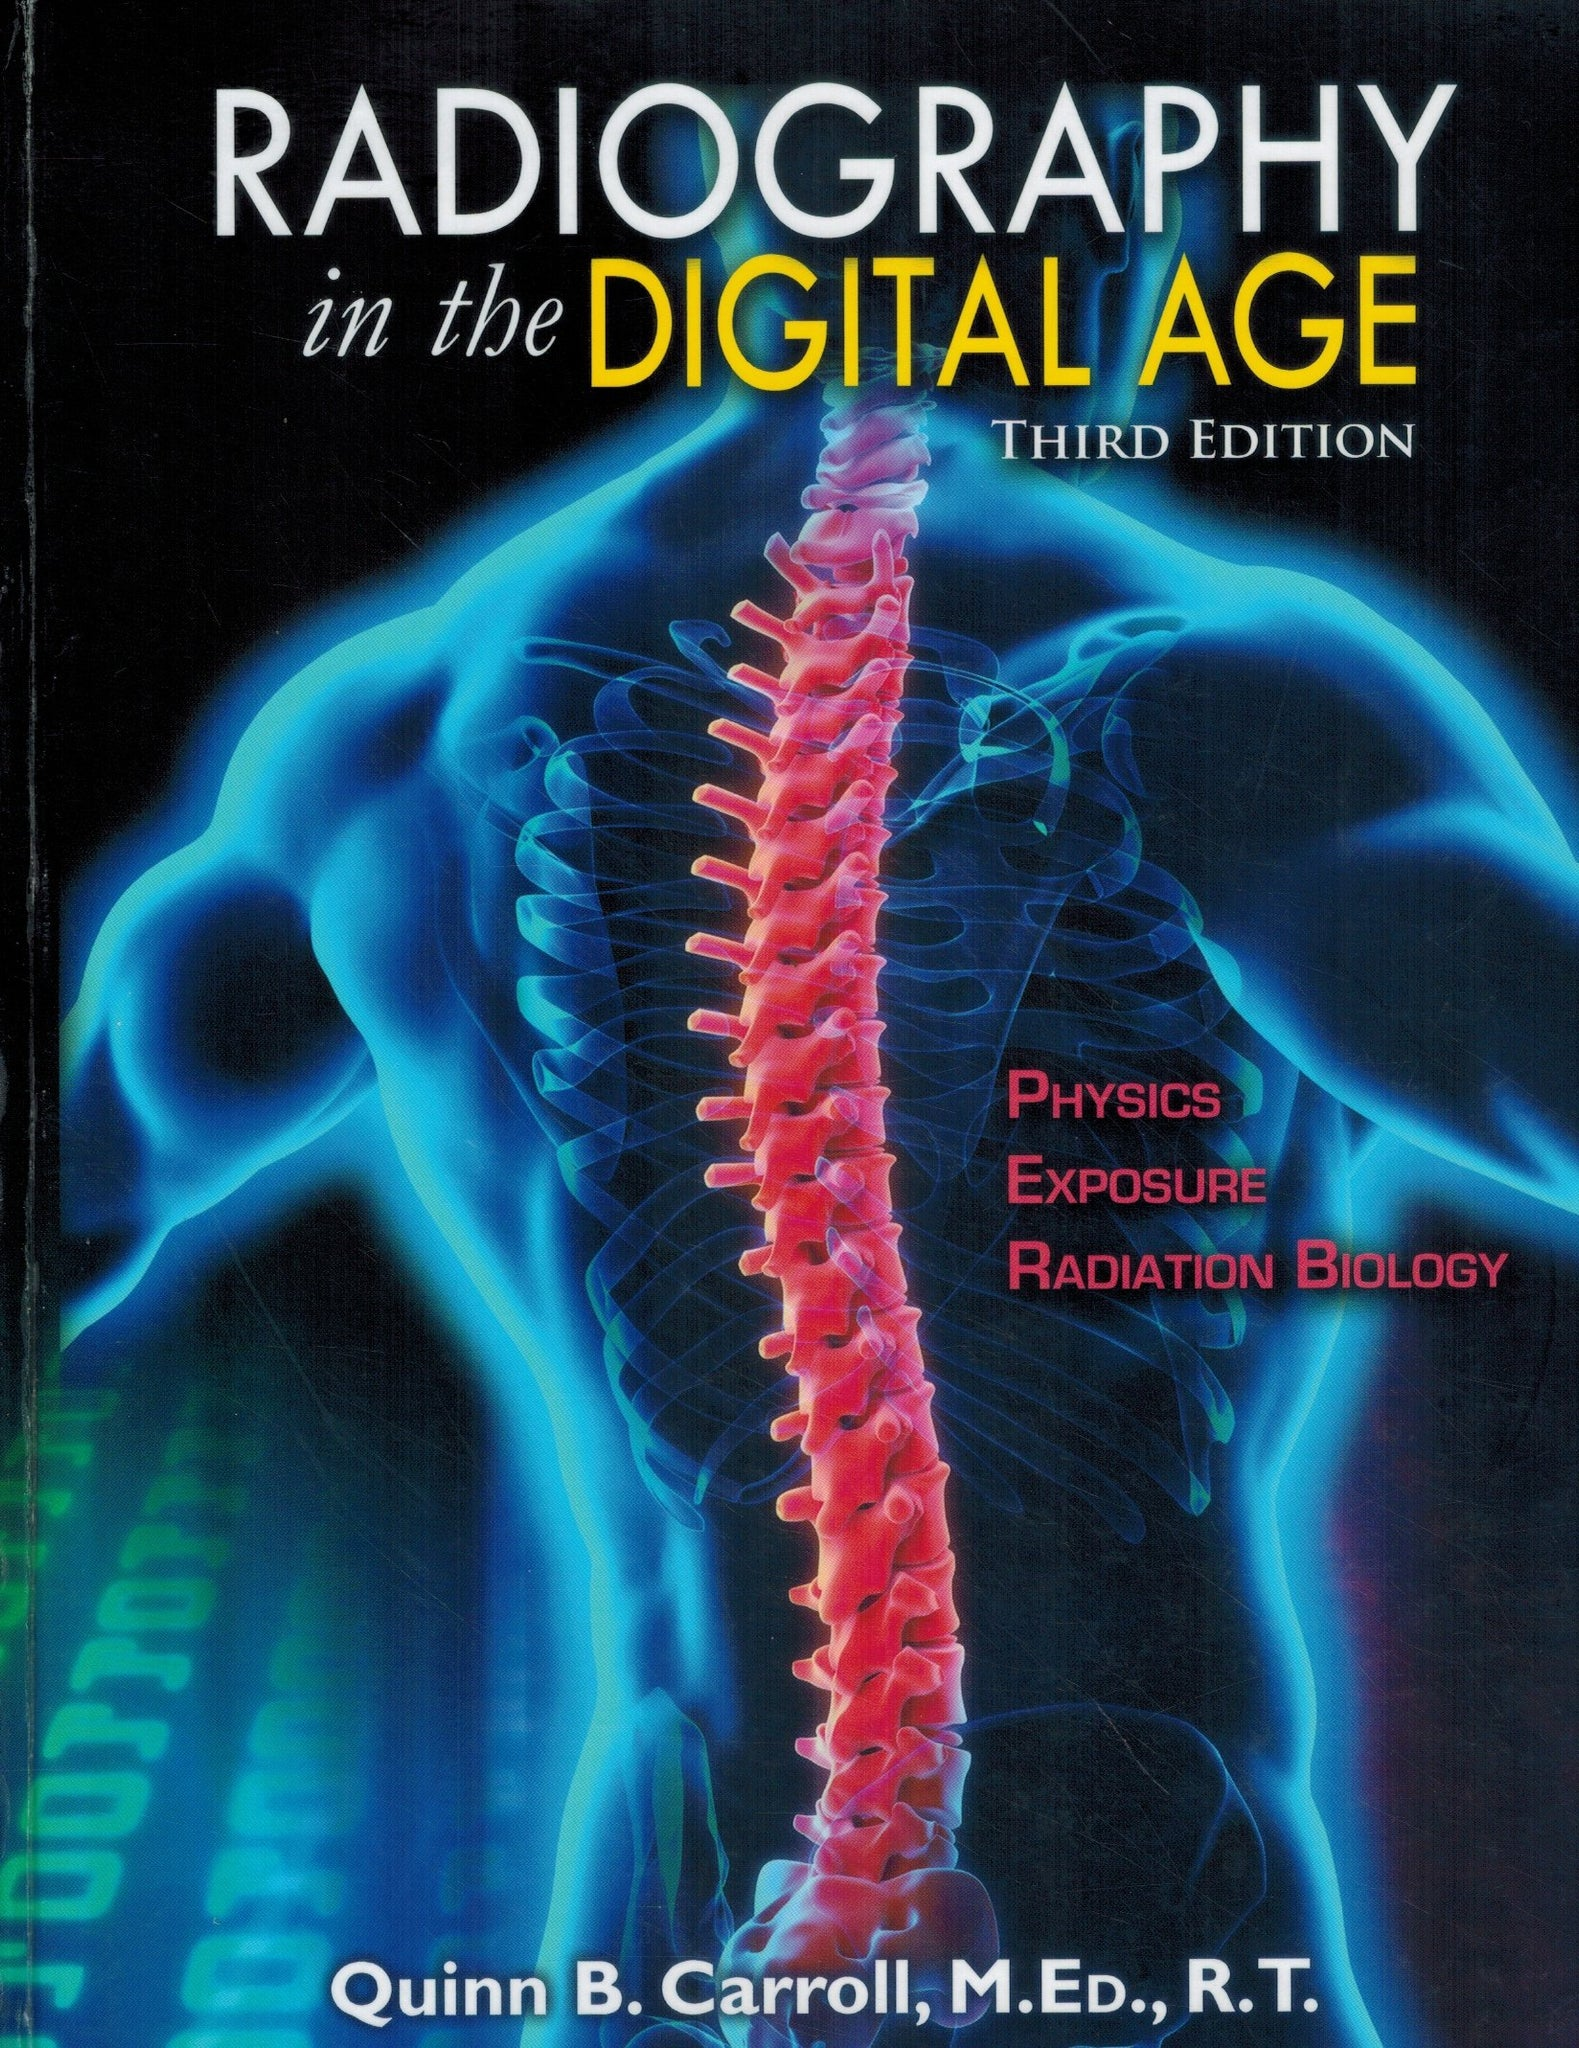 RADIOGRAPHY IN THE DIGITAL AGE Physics - Exposure - Radiation Biology -  Third Edition  by Carroll, Quinn B.